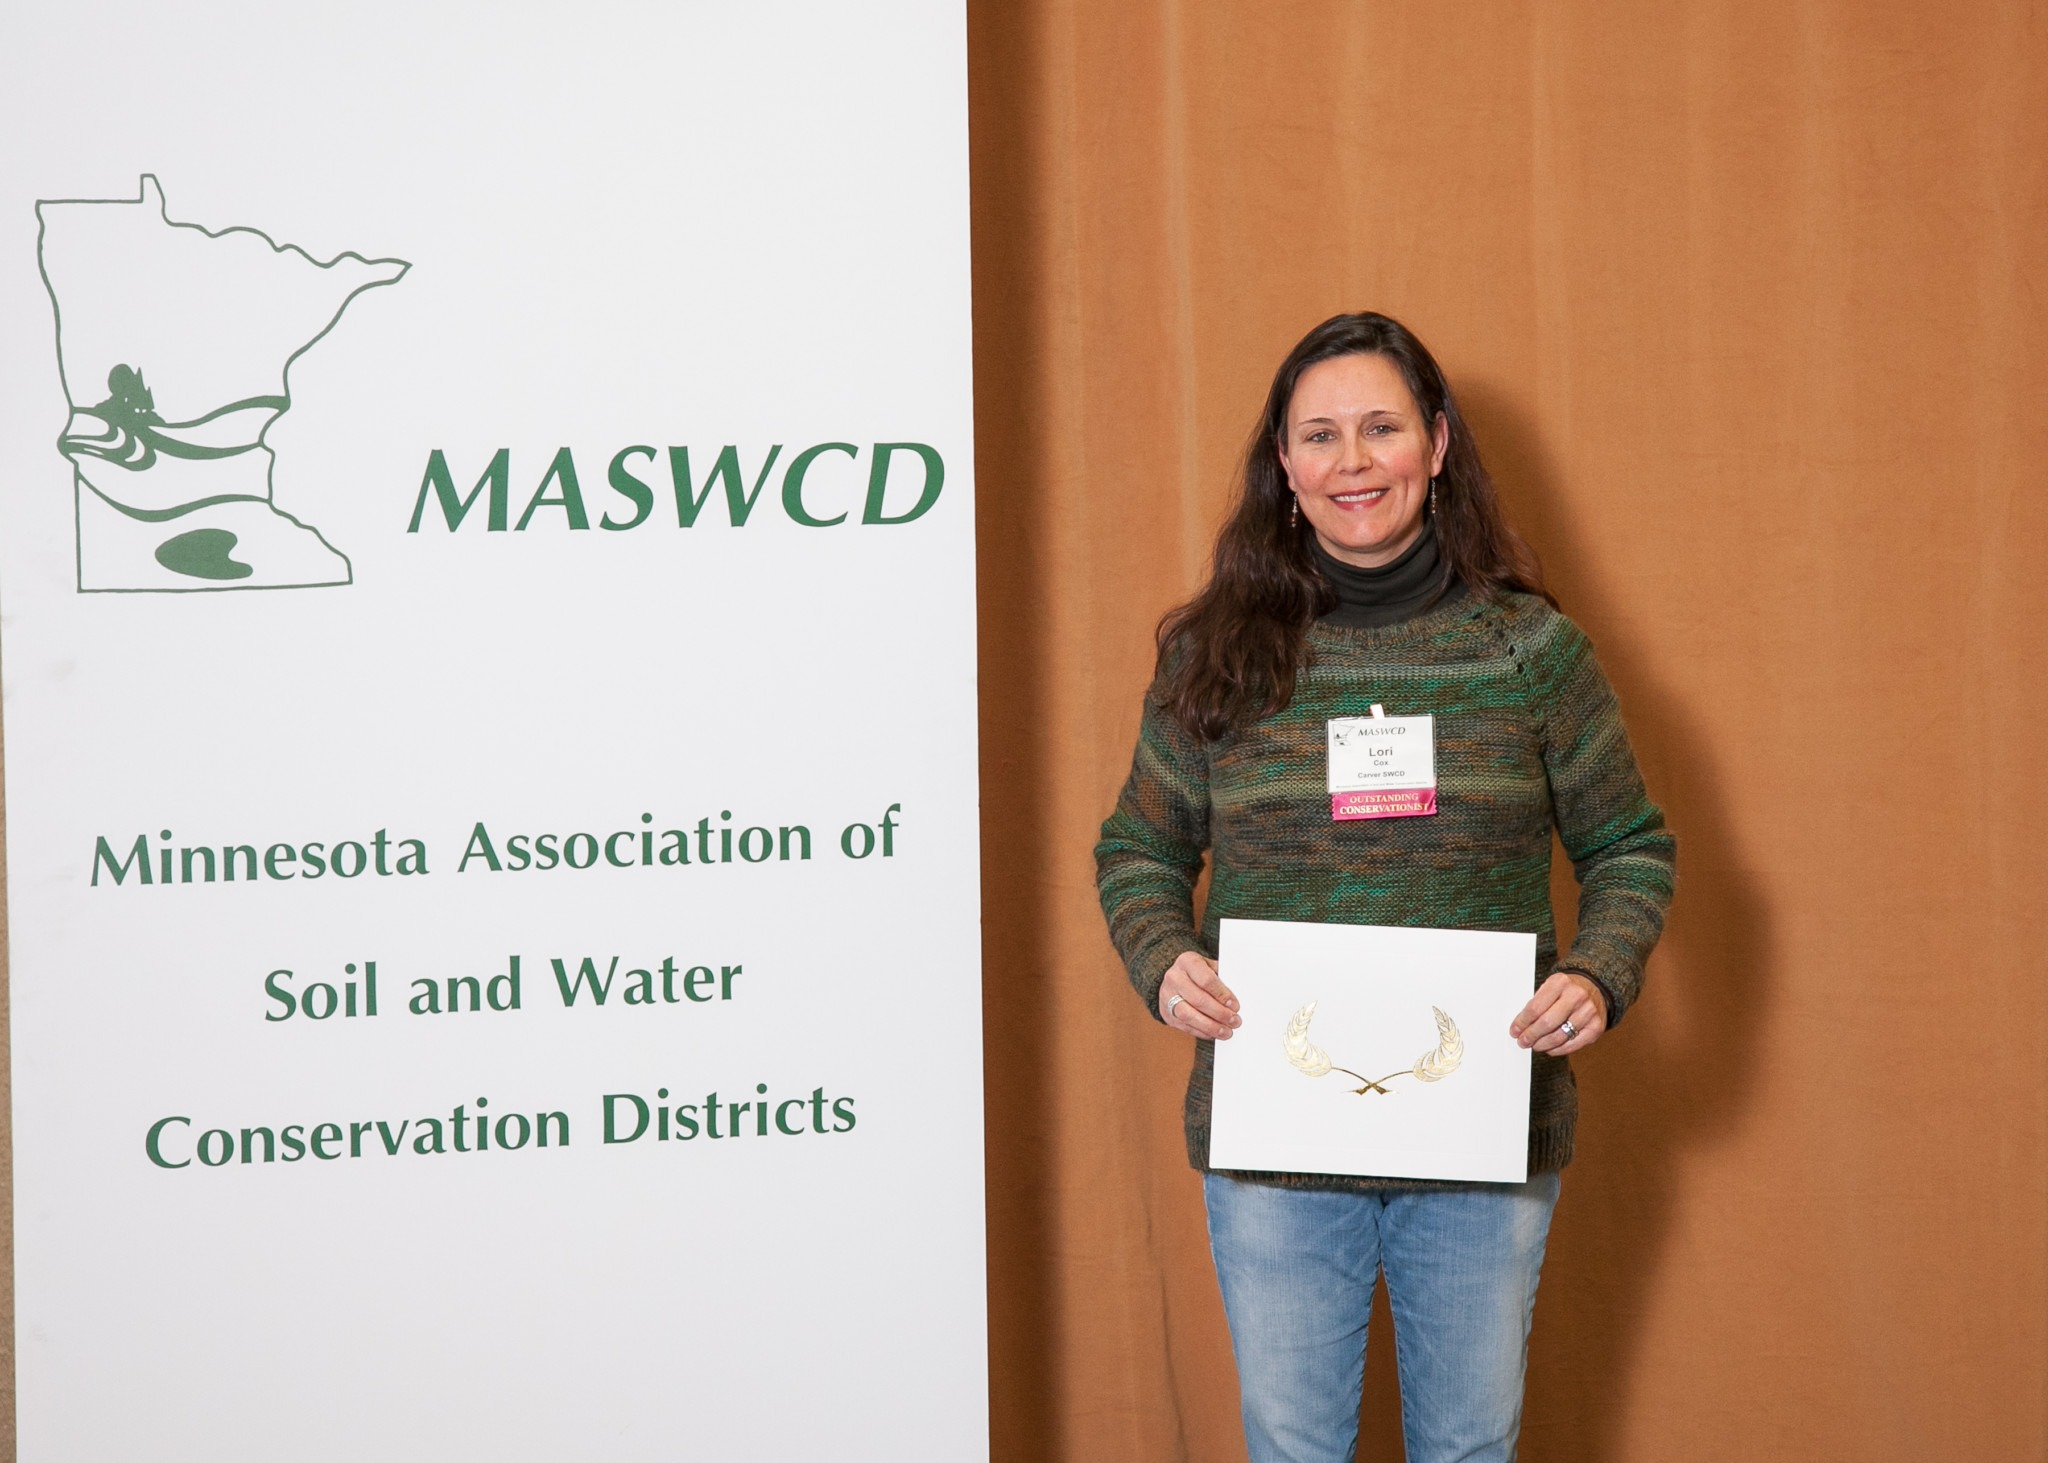 Lori of Roots Return Heritage Farm receives conservation award.